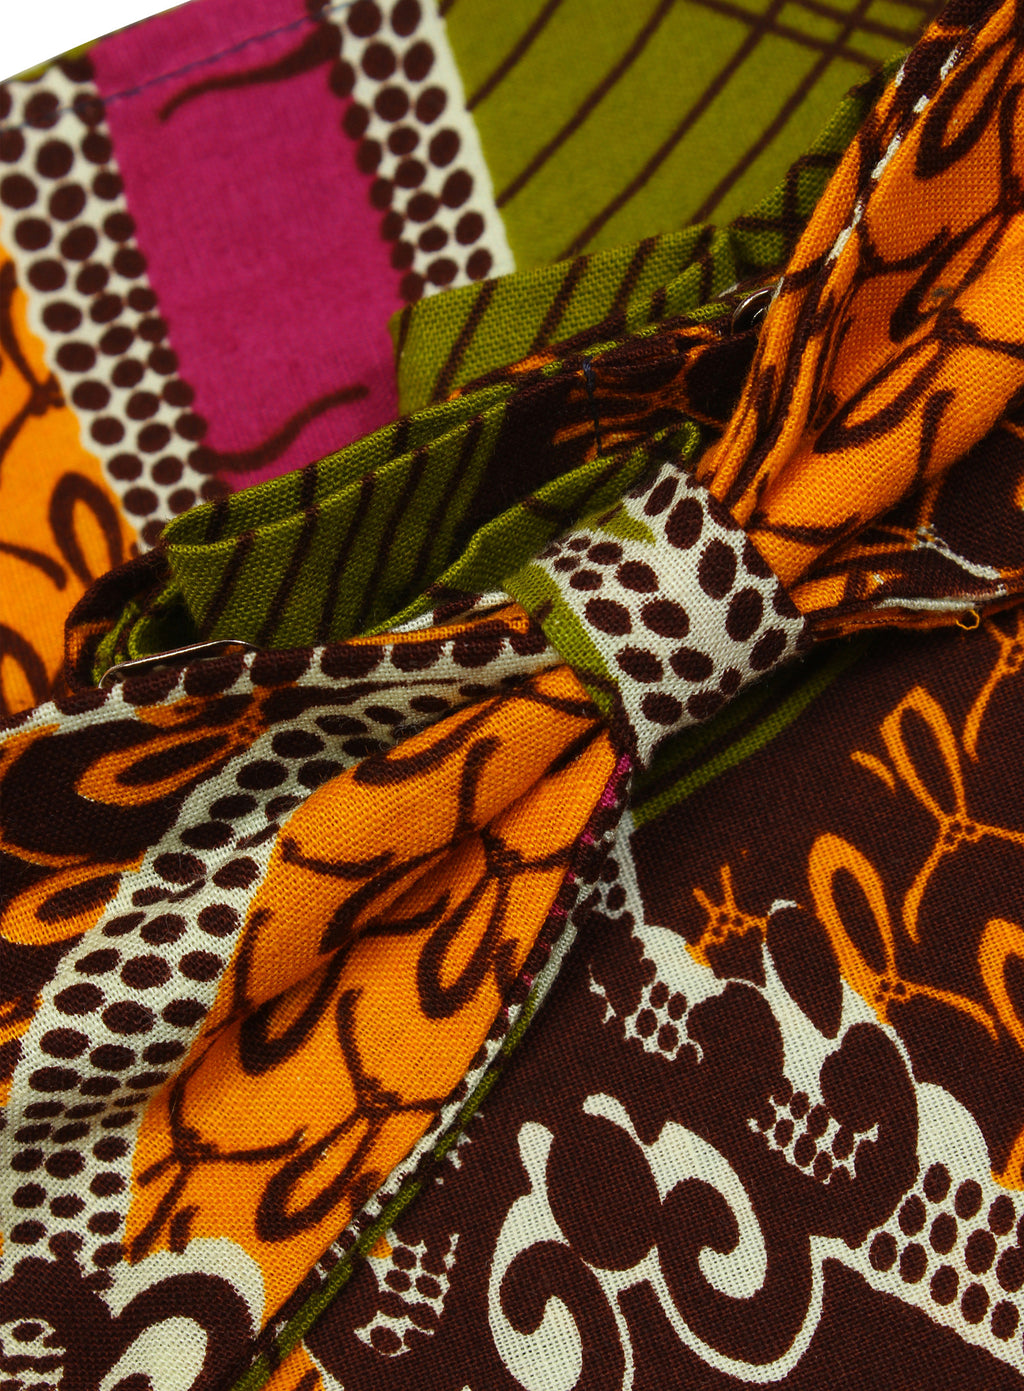 Men's African Print Bow Tie & Pocket Square-Chandelier - OHEMA OHENE AFRICAN INSPIRED FASHION  - 2